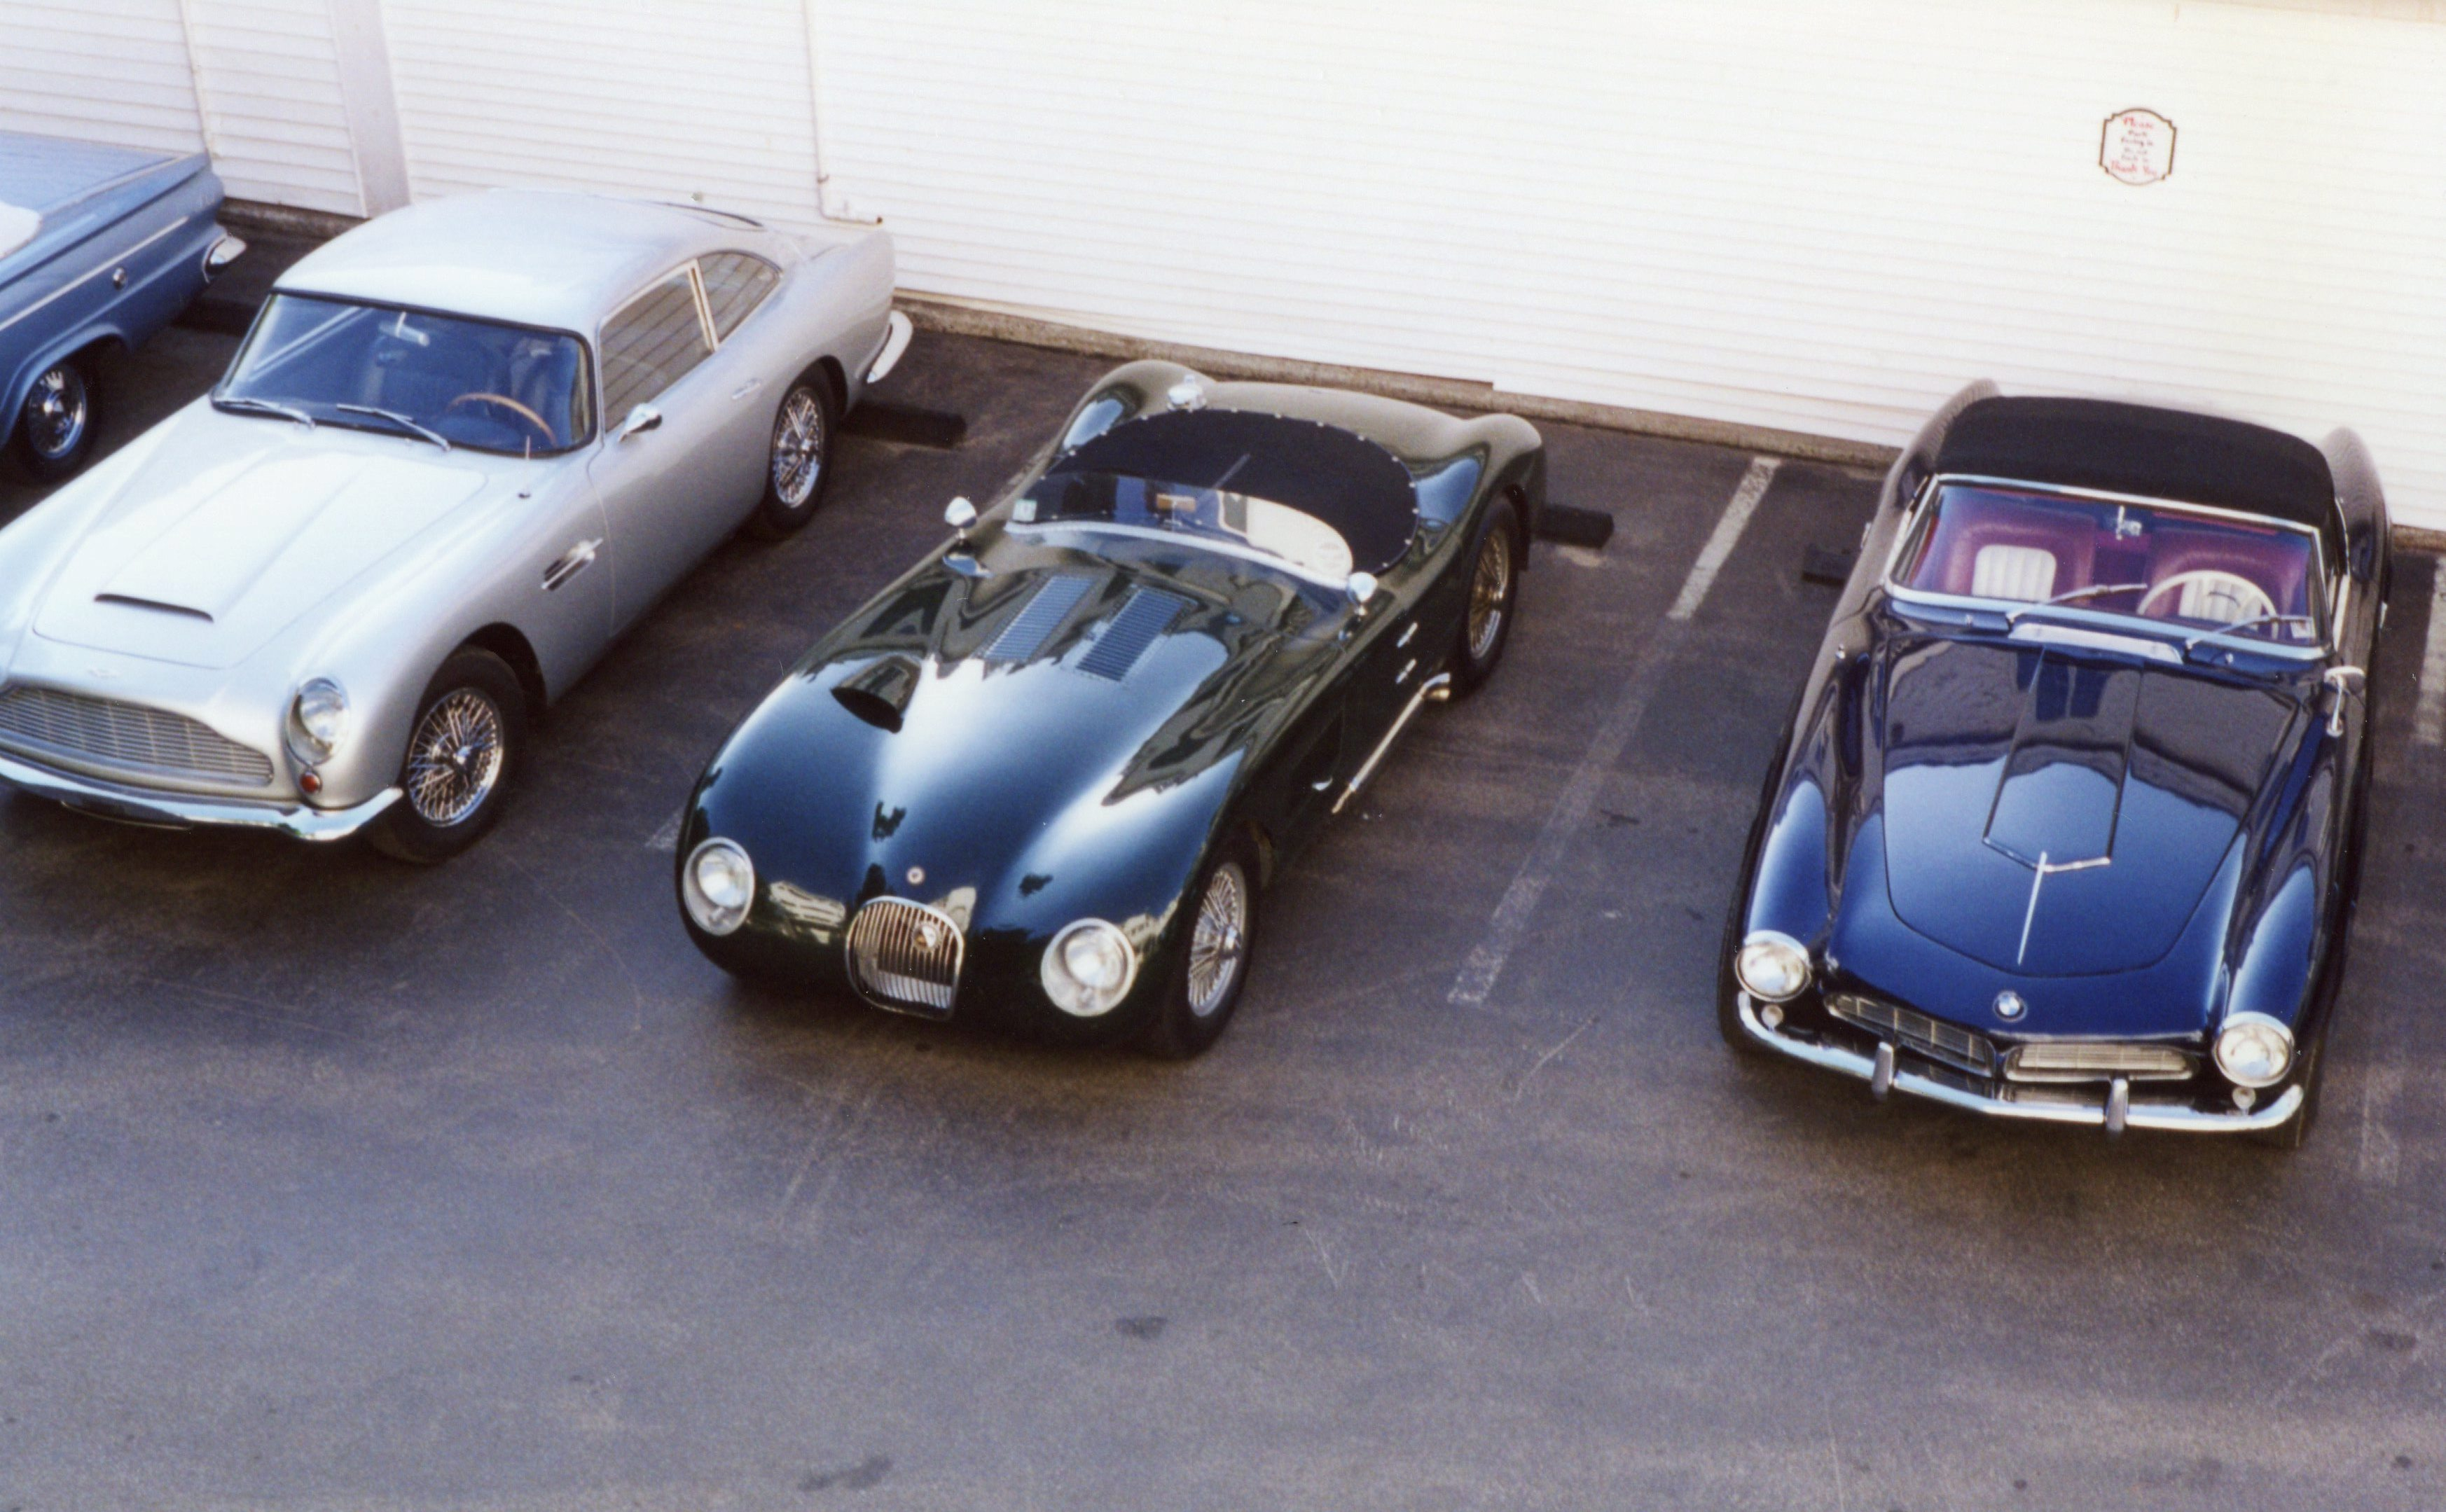 Aston, Jag, BMW (would make a nice collection for my garage)